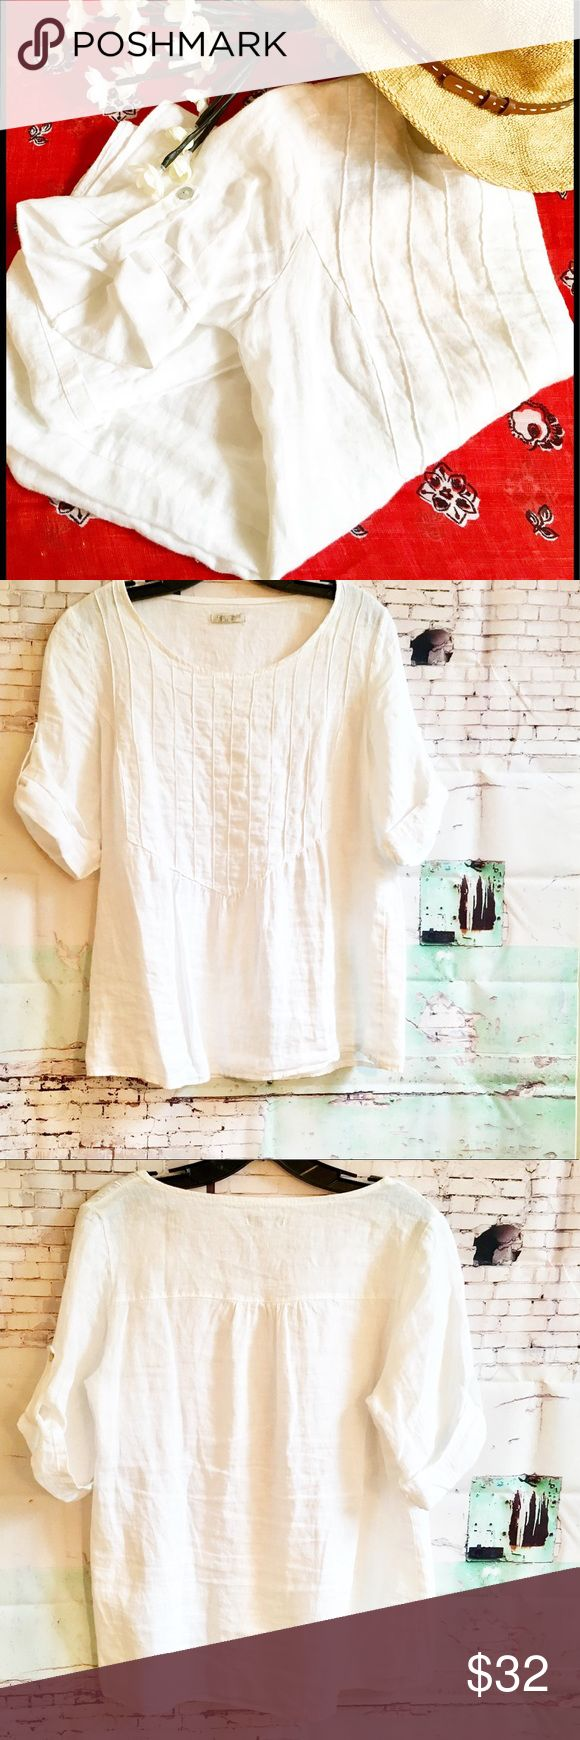 LINA TOMEI WHITE SHORT SLEEVE TOP, SIZE MEDIUM MADE IN ITALY 100% linen white top.  Front is pin tucked.  Short sleeve.   Chest is 19.5 and length is 25.5.  HARDLY WORN. Tops